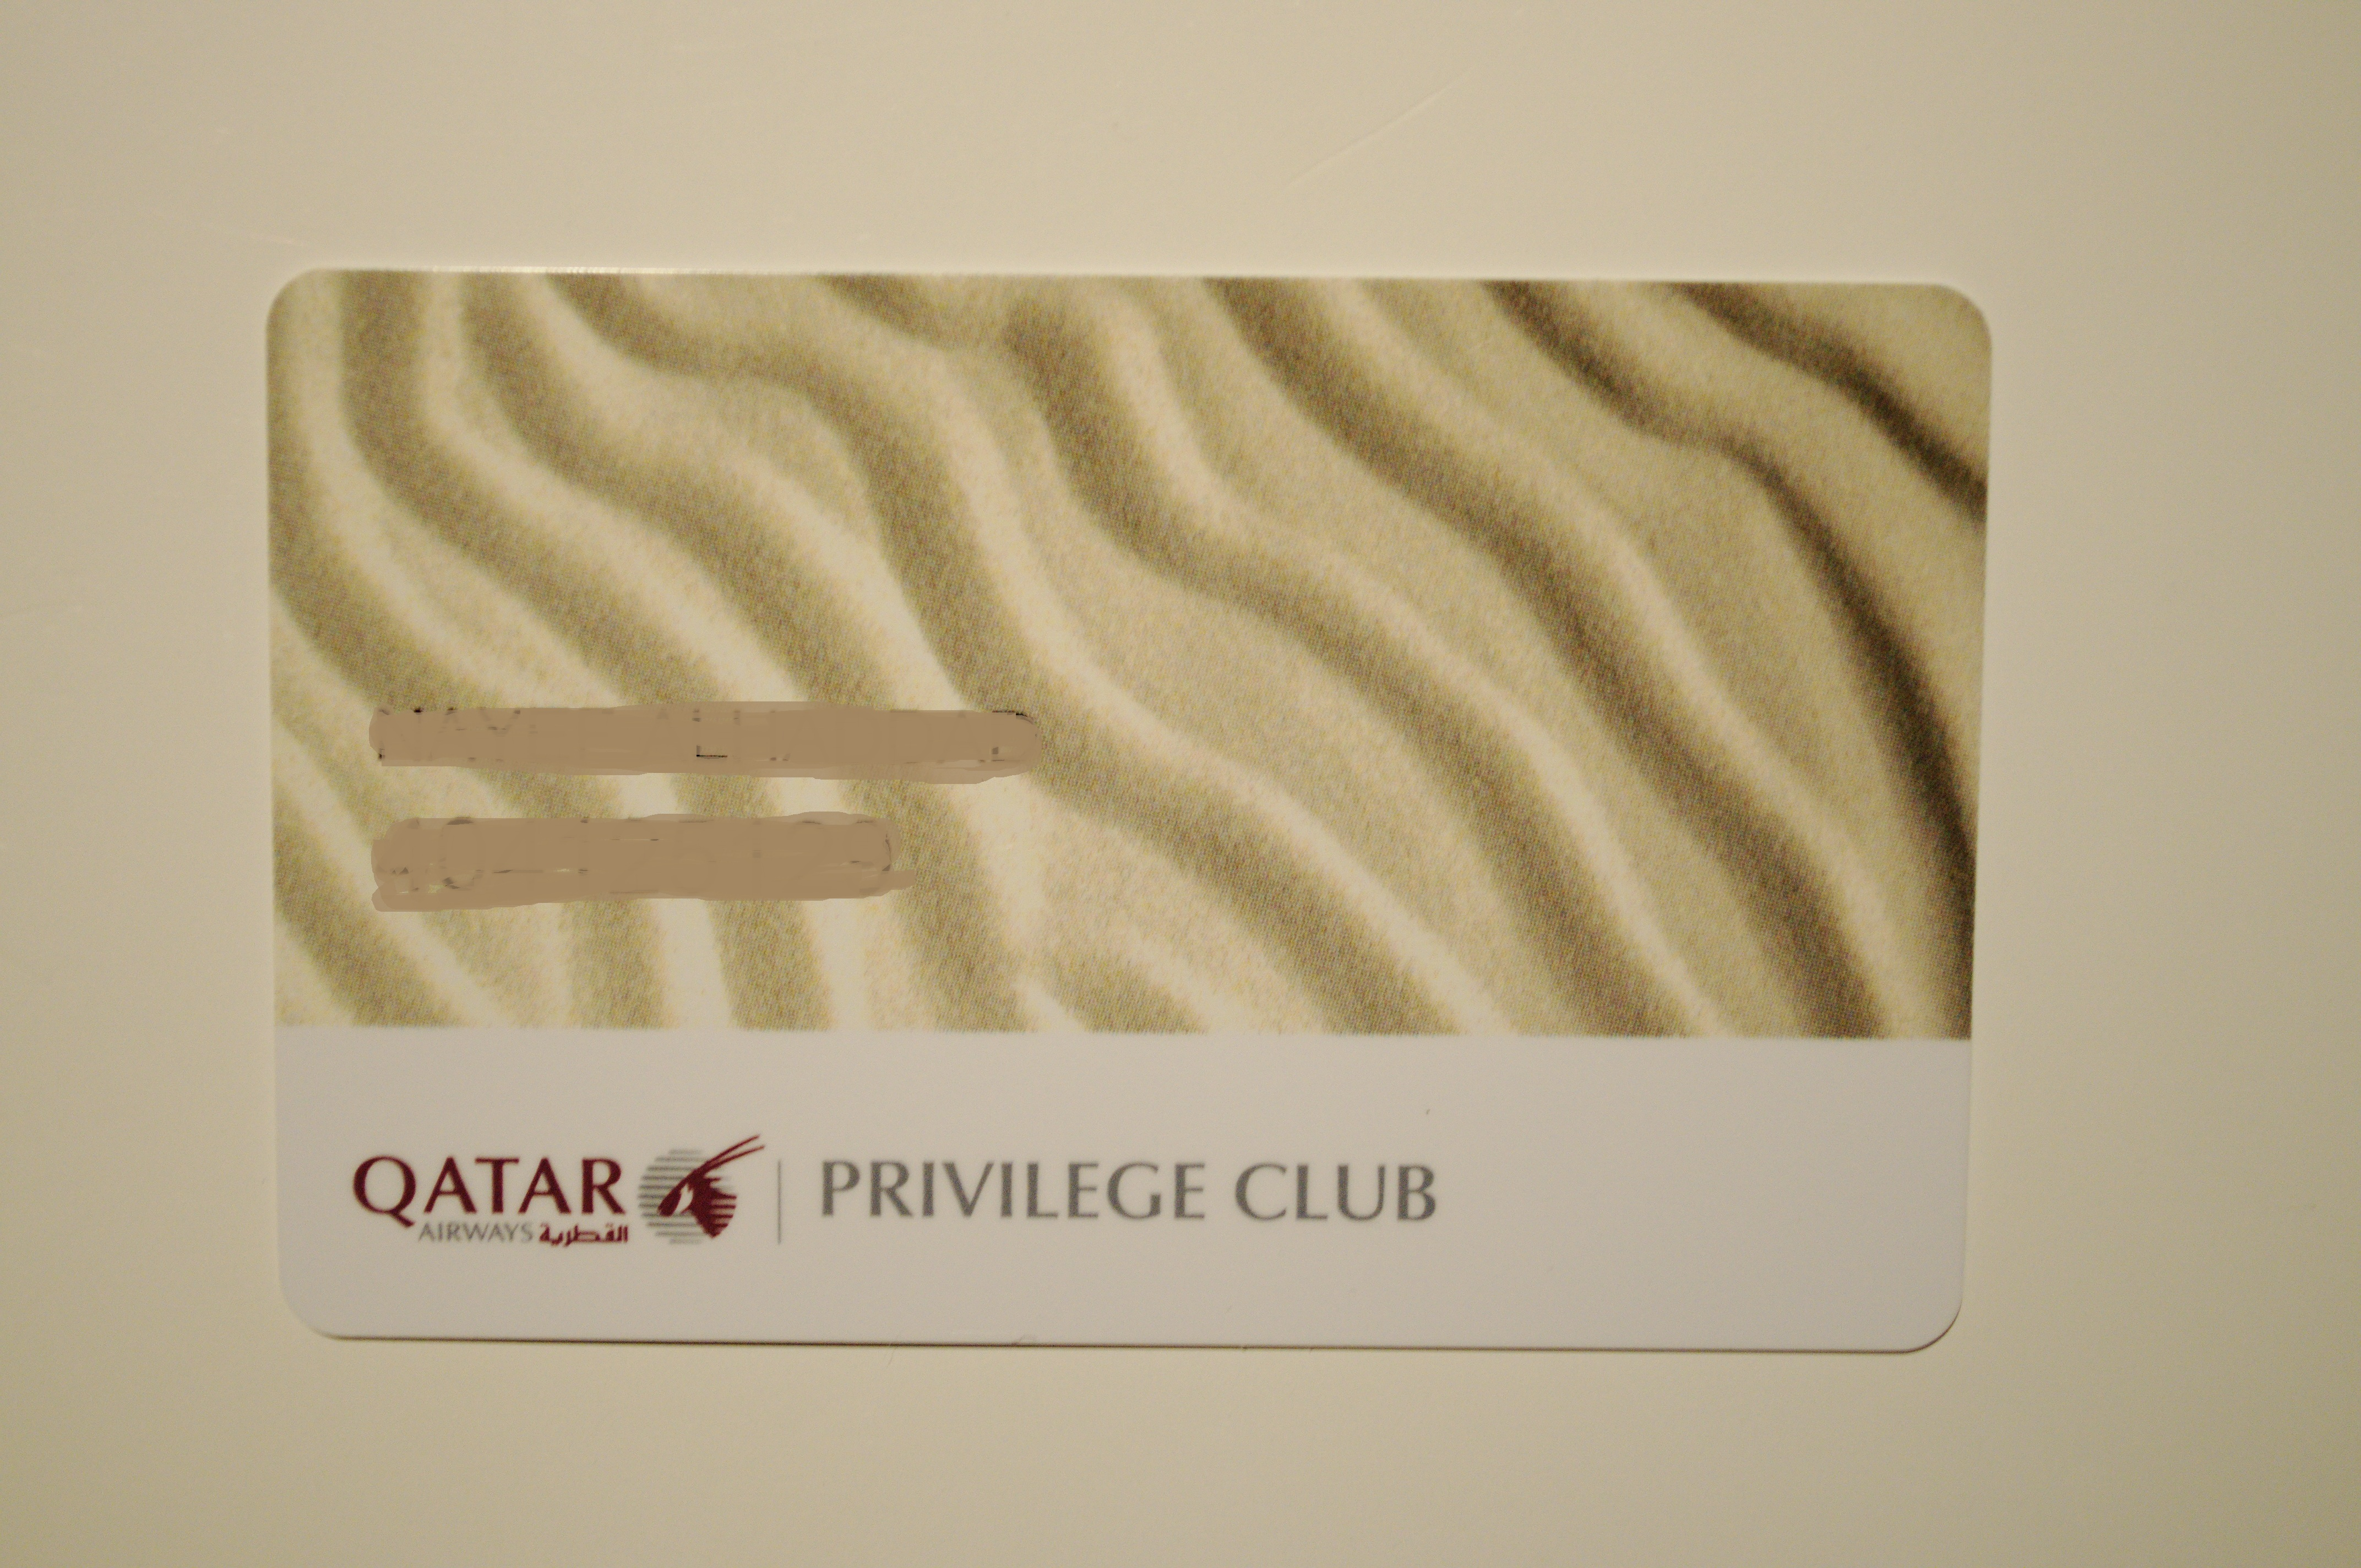 """Just checked today the latest """"enhancement"""" regarding Qatar Airways Privilege Club, found out that my favorite redemption DPS-CDG doubled in Qmiles price (from 75k to k), notwithstanding the added per segment fee (usd) and the absence of any reliable customer service."""